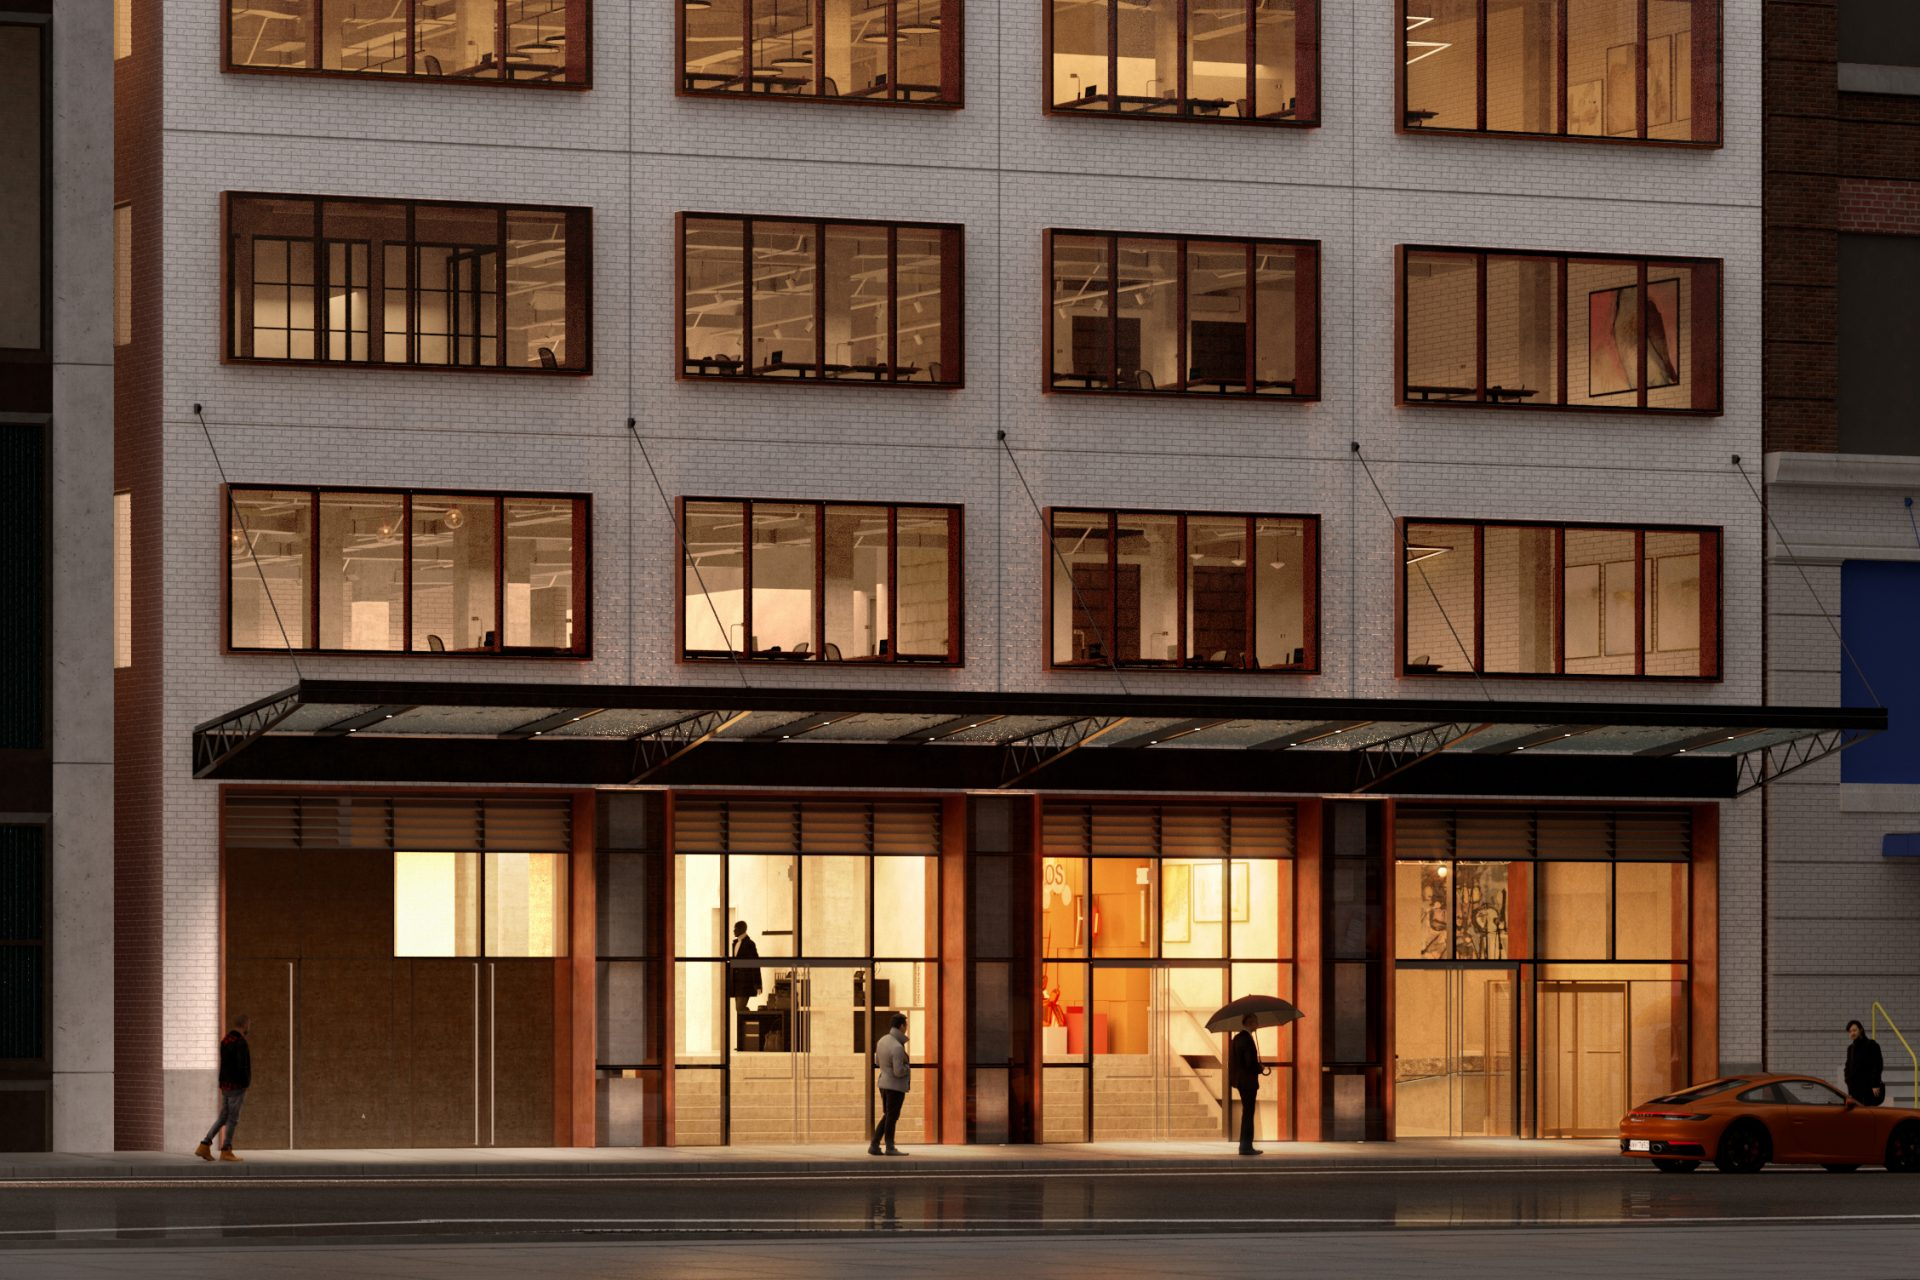 New street-level identity and presence at 541 West 21st Street